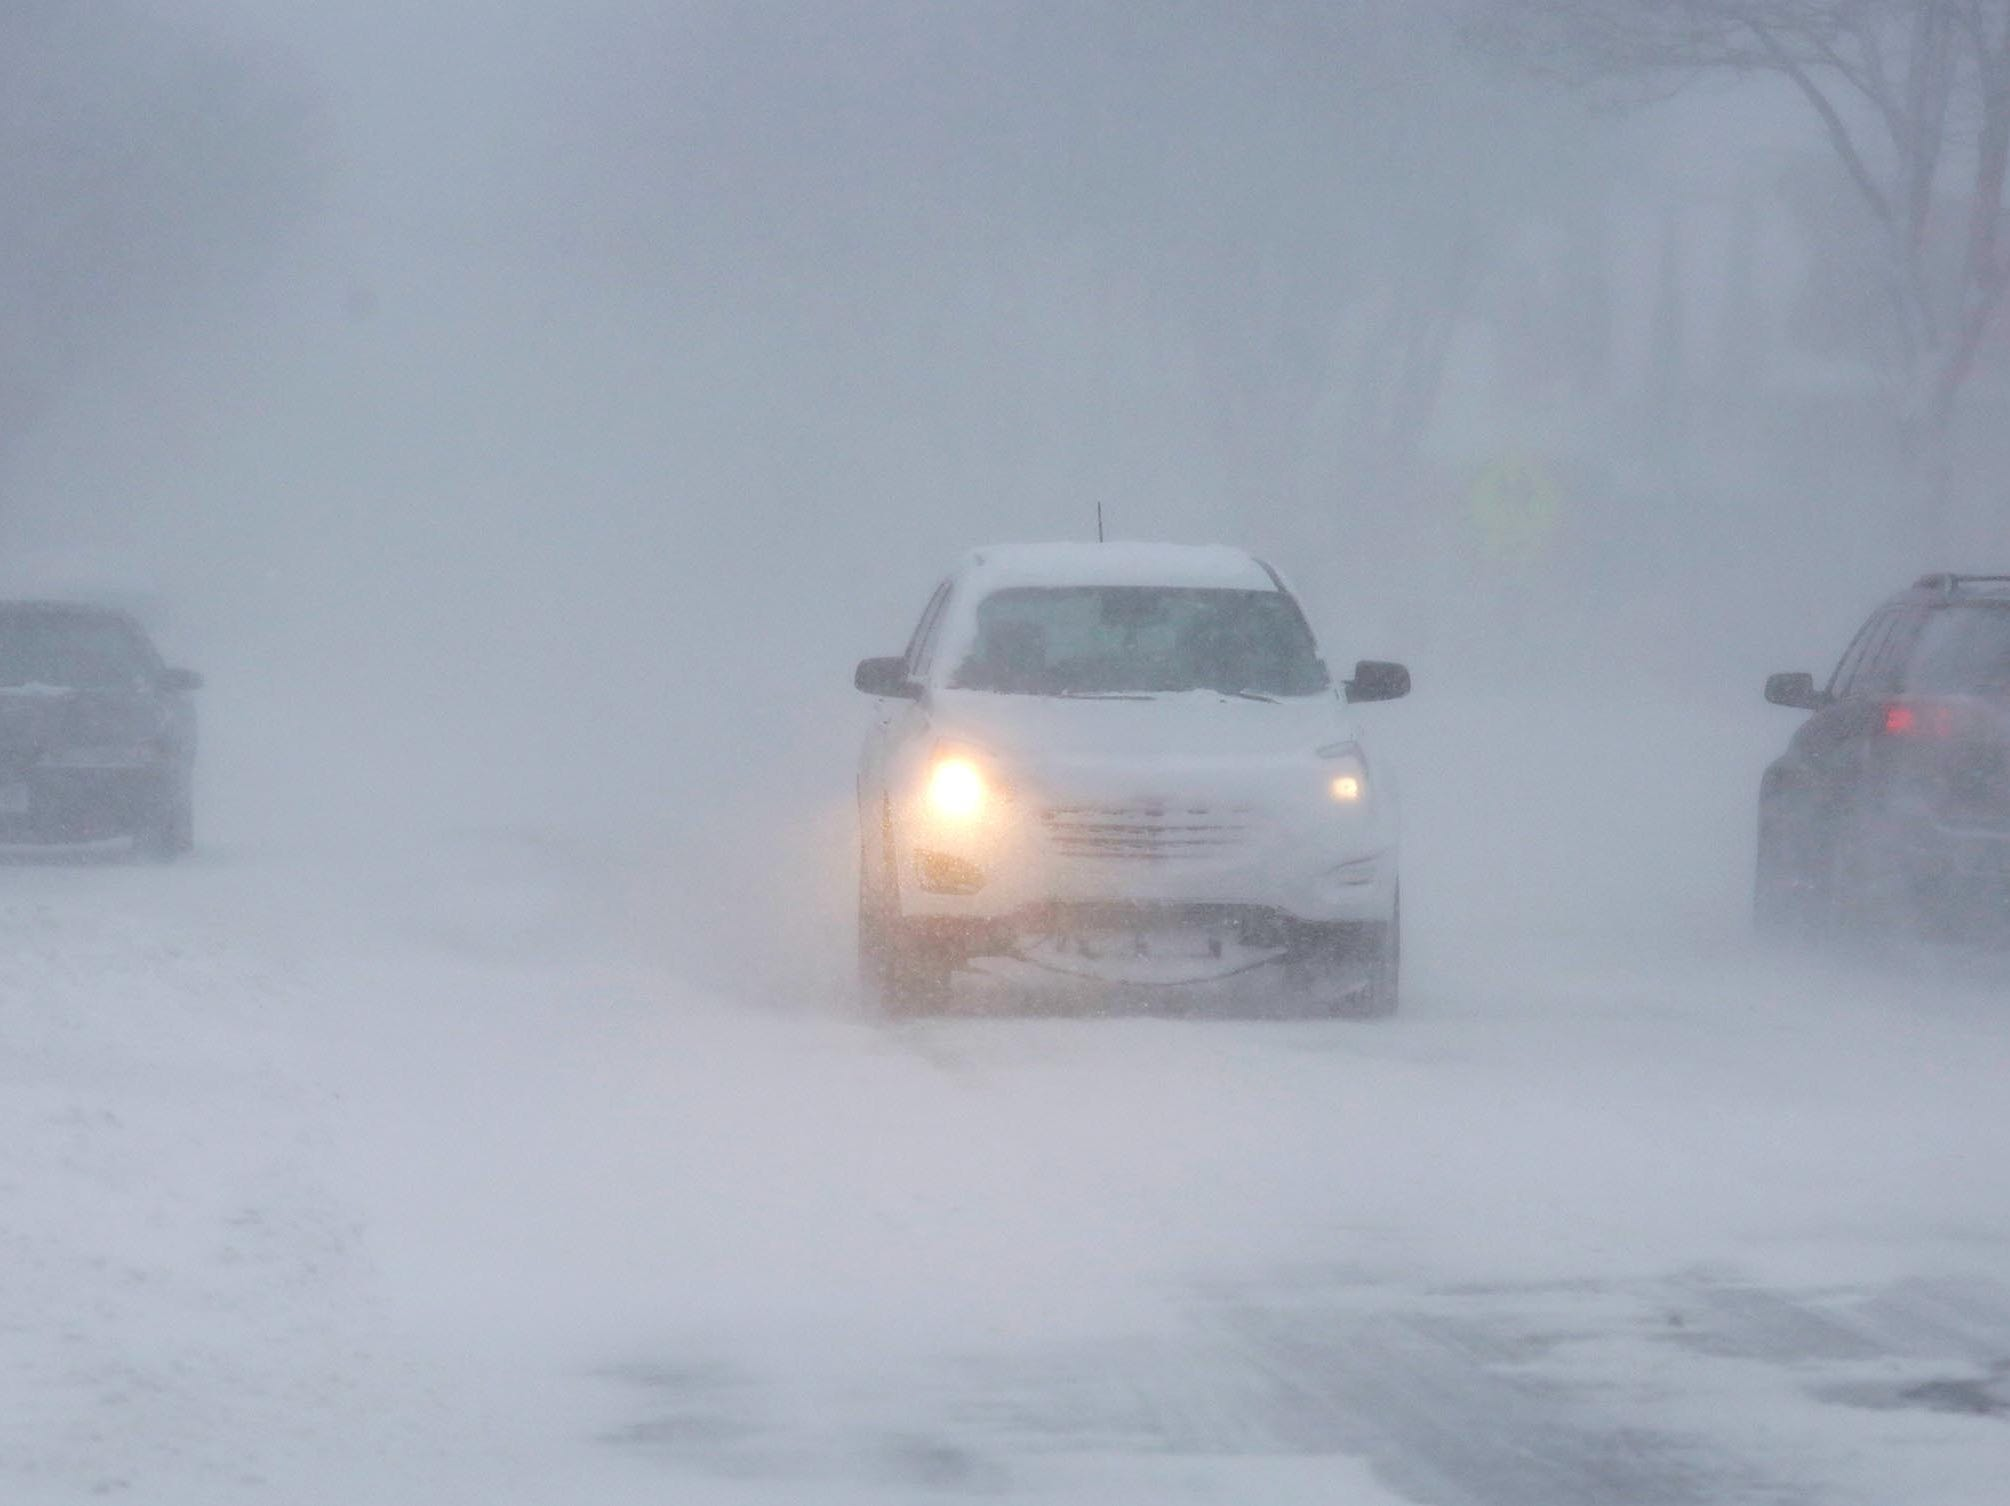 Traffic travels southbound on South 8th Street in near whiteout conditions, Monday, Jan. 28, 2019, in Sheboygan, Wis.